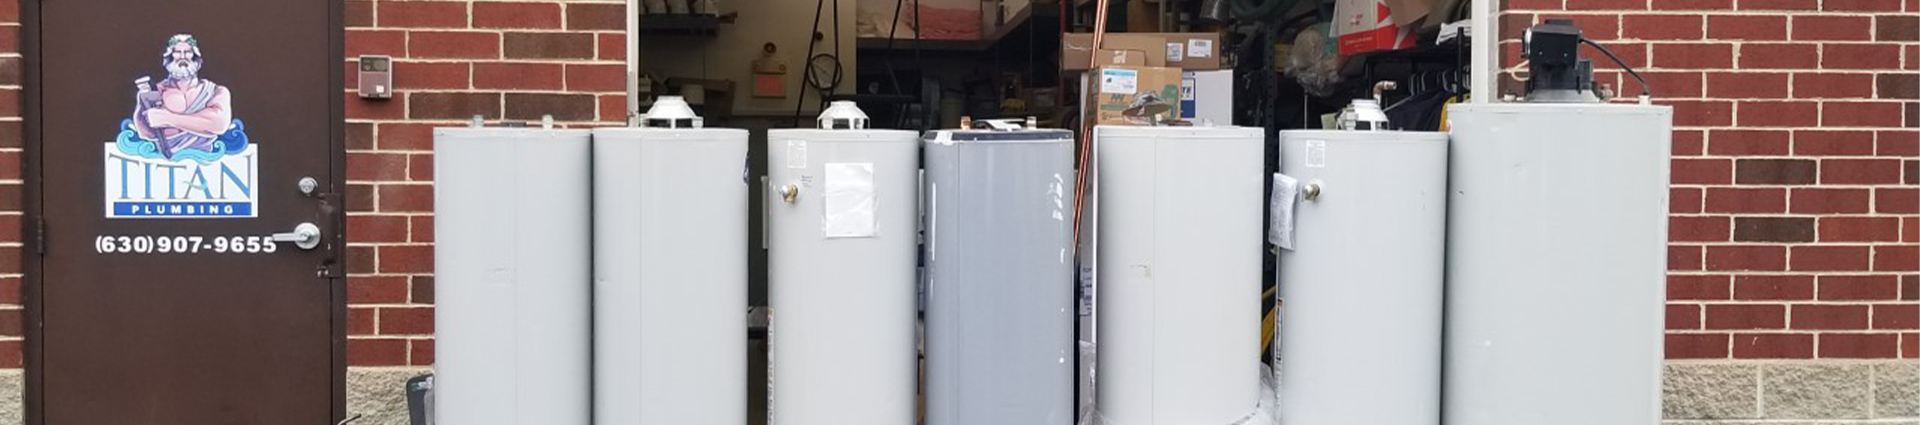 Titan water heater banner